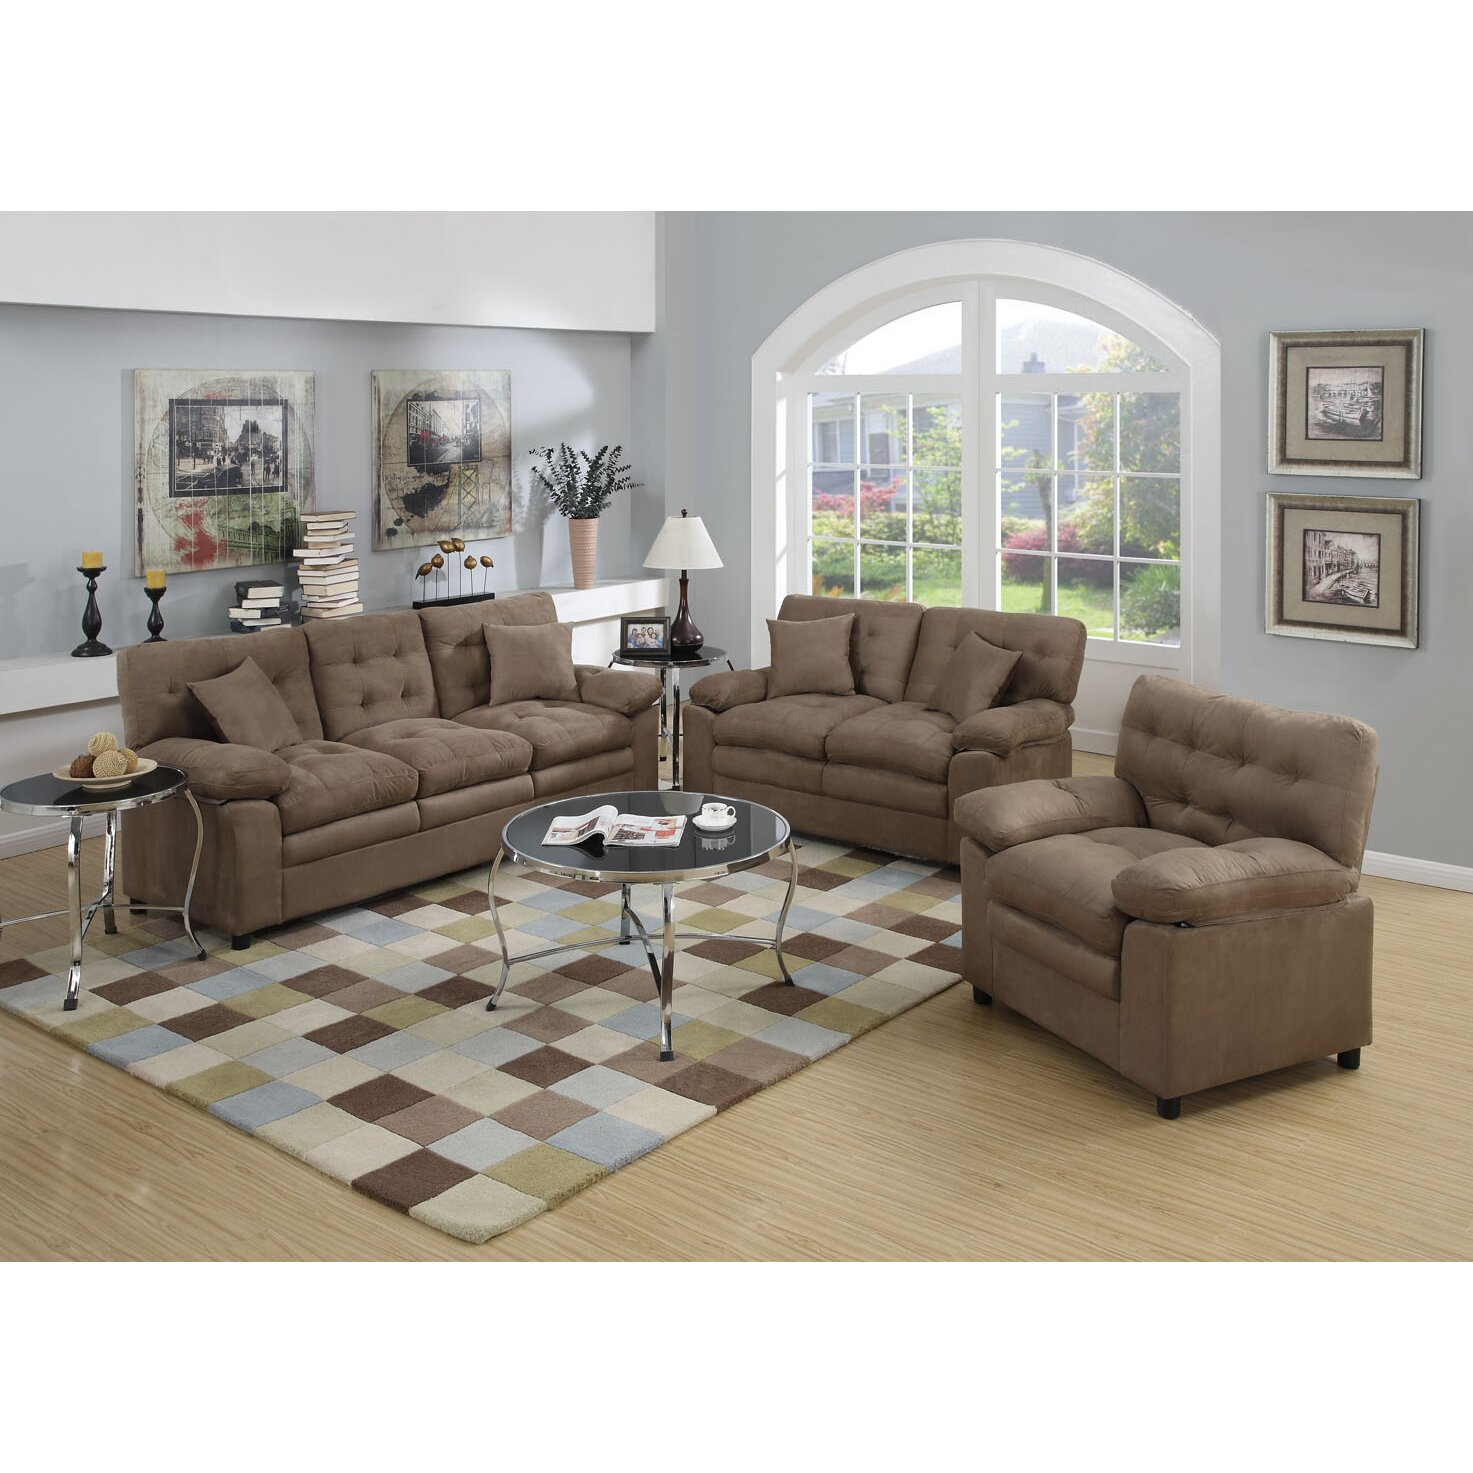 Poundex bobkona colona 3 piece living room set reviews for Living room farnichar